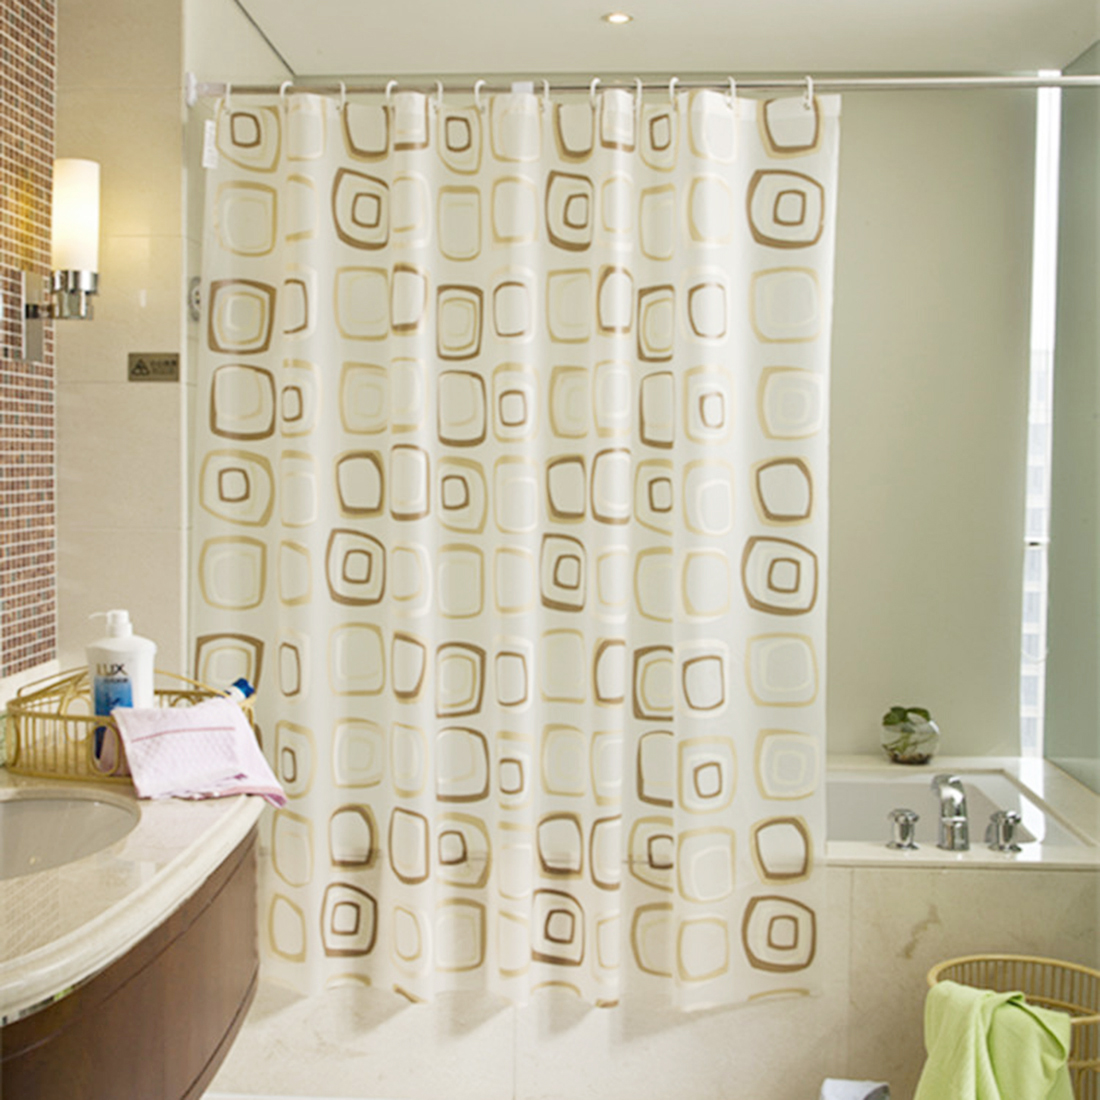 Practical Boutique Waterproof bath Curtain Square Pattern Home decor Bathroom Shower Curtain PEVA fabric 180*200CM